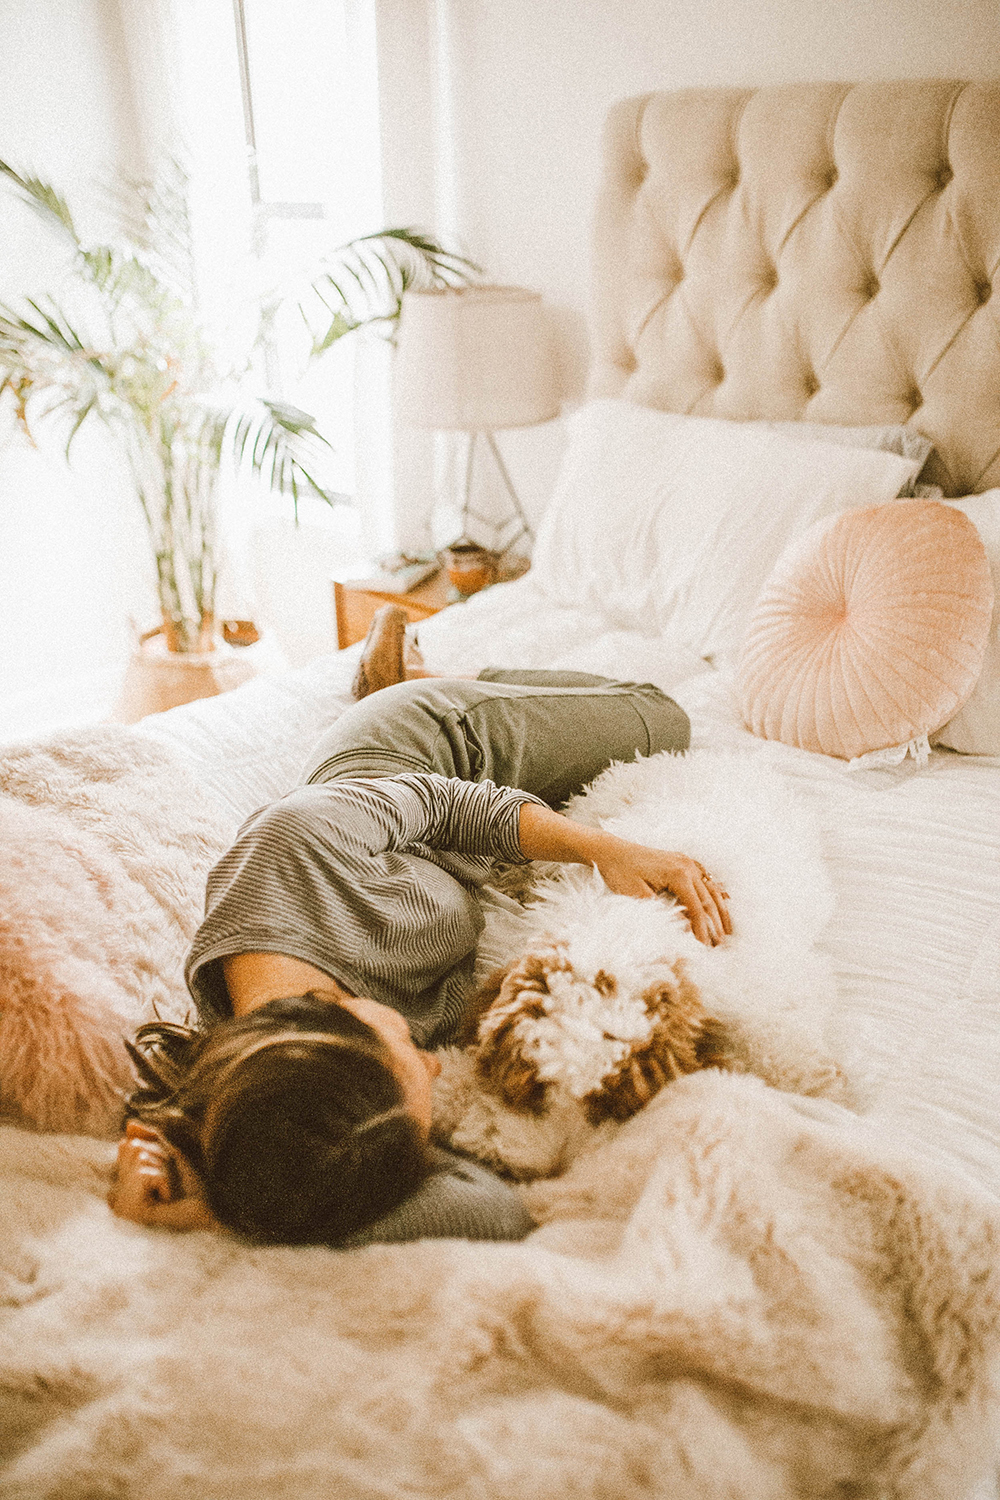 livvyland-blog-olivia-watson-lou-and-grey-loungewear-cozy-home-bed-coffee-dog